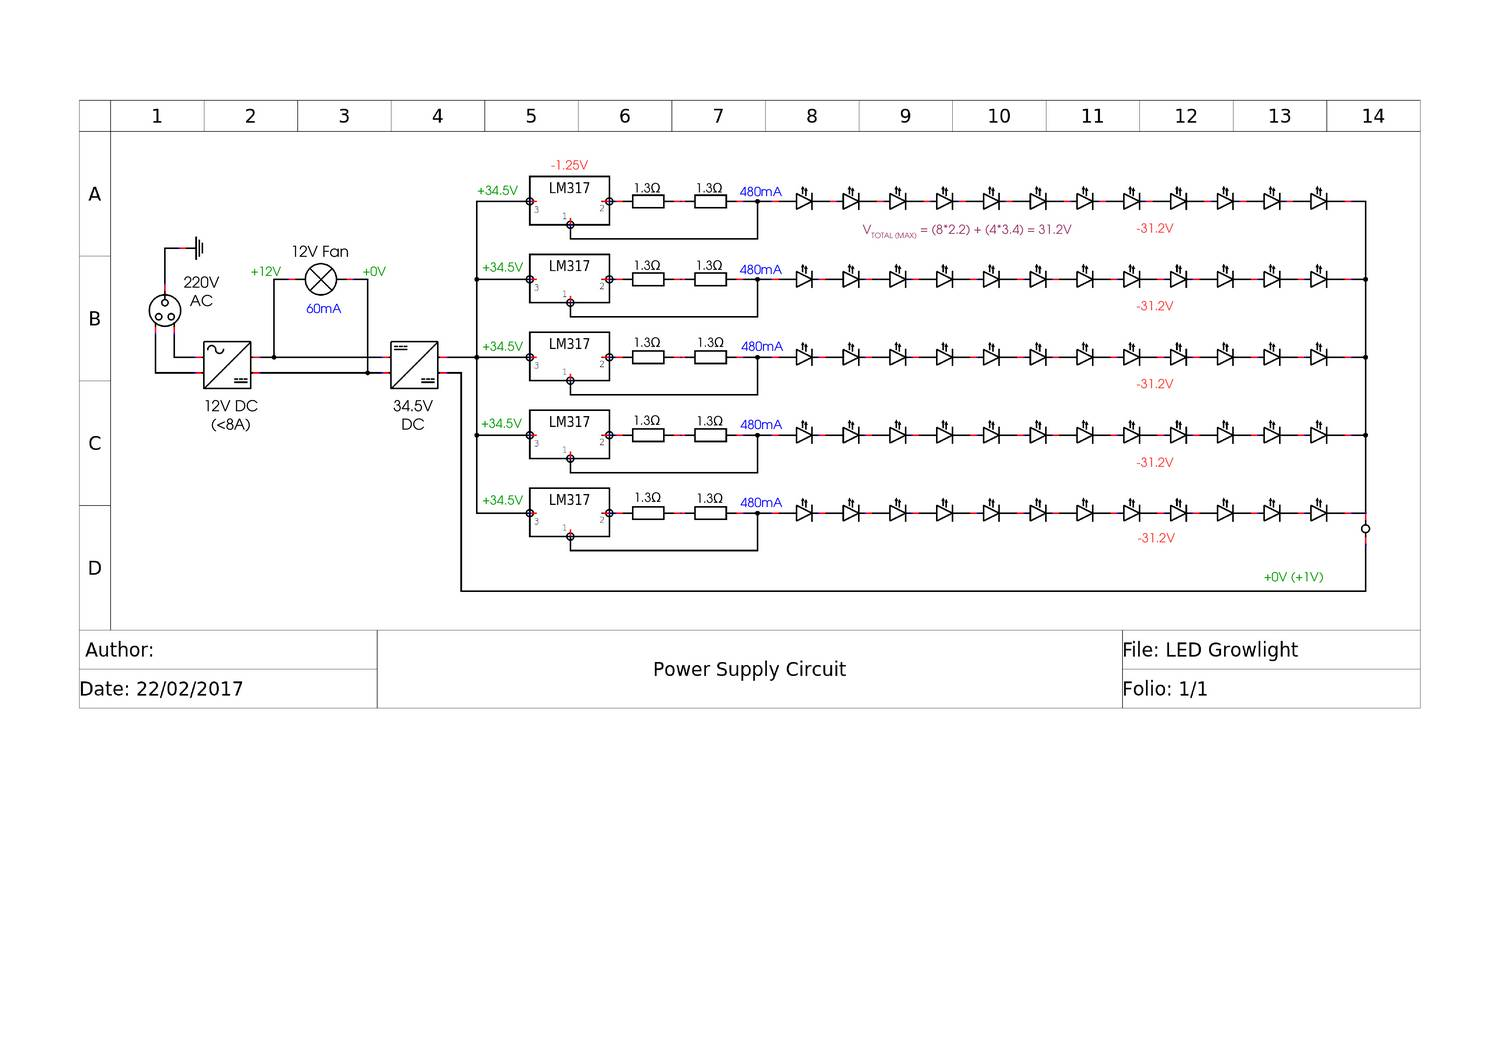 Emailing Power Supply Circuit Diagram Pdf